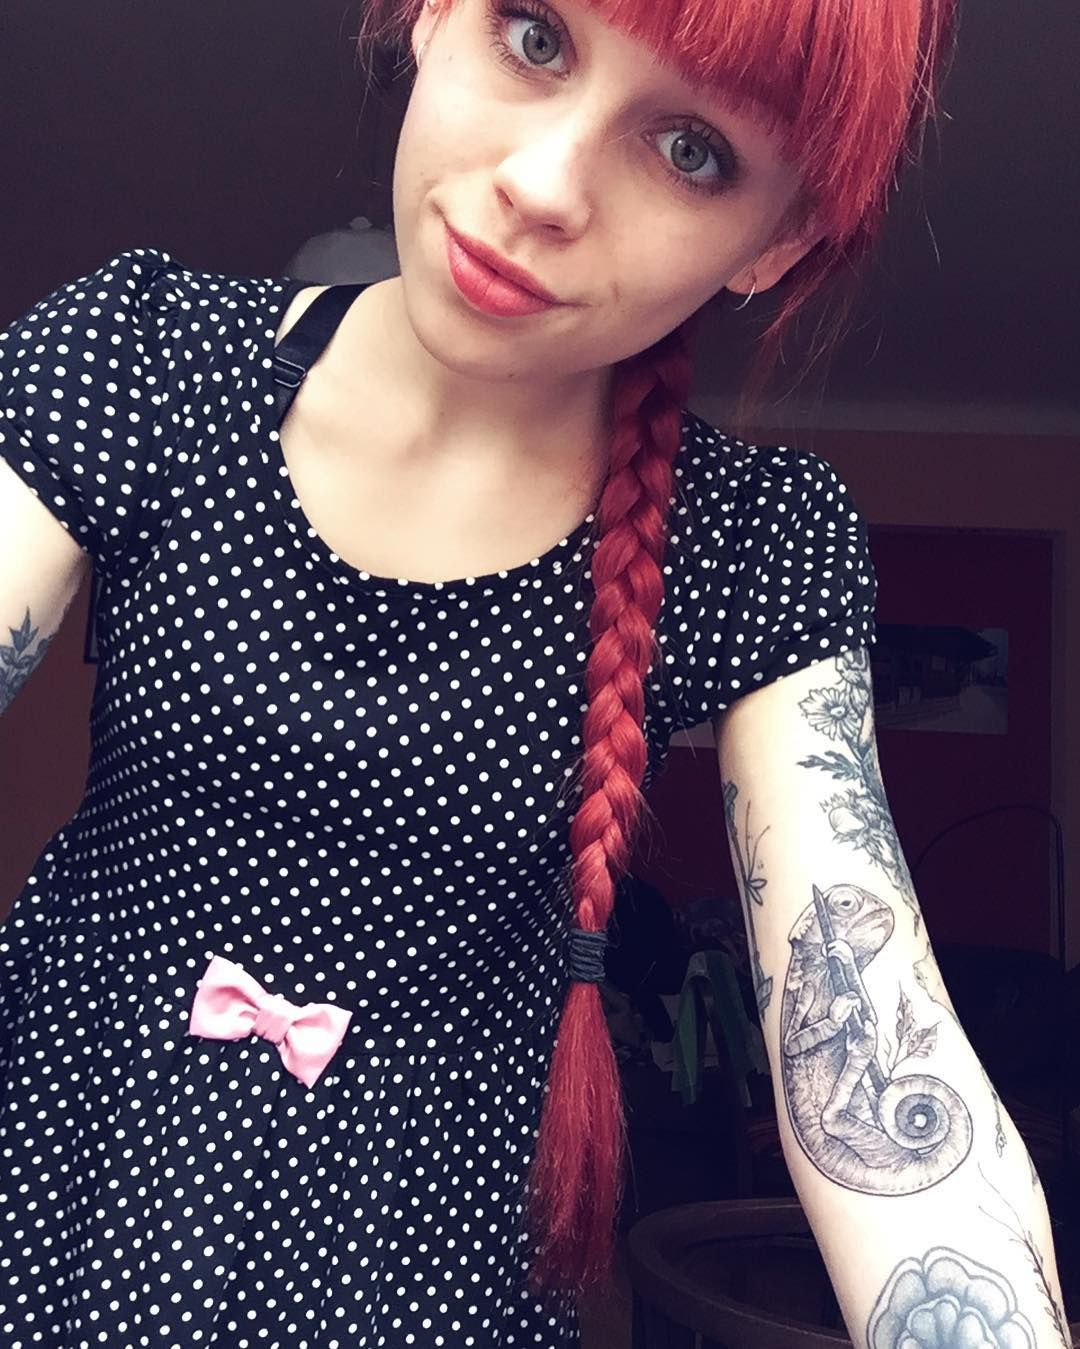 Today I had a pretty good day. Tomorrow I am finally going to the gym so I am very excited ✨ #redhead #redhair #girlswithtattoos #sleeve #selfie #tattooedgirls